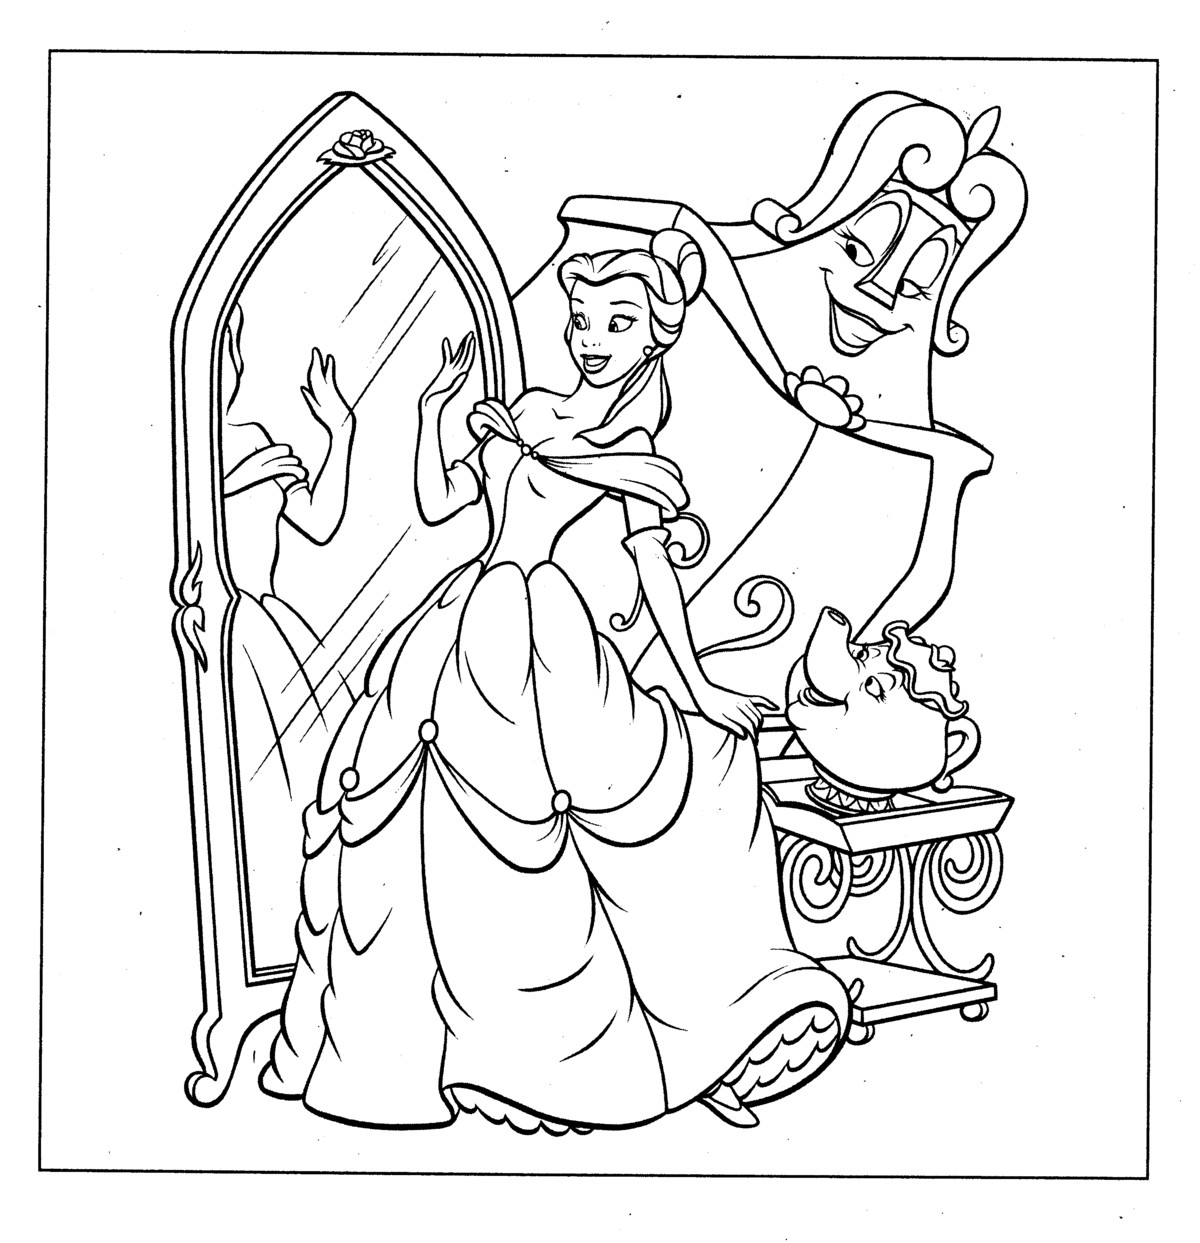 coloring picture princess 6 best images of disney printable disney princess princess coloring picture